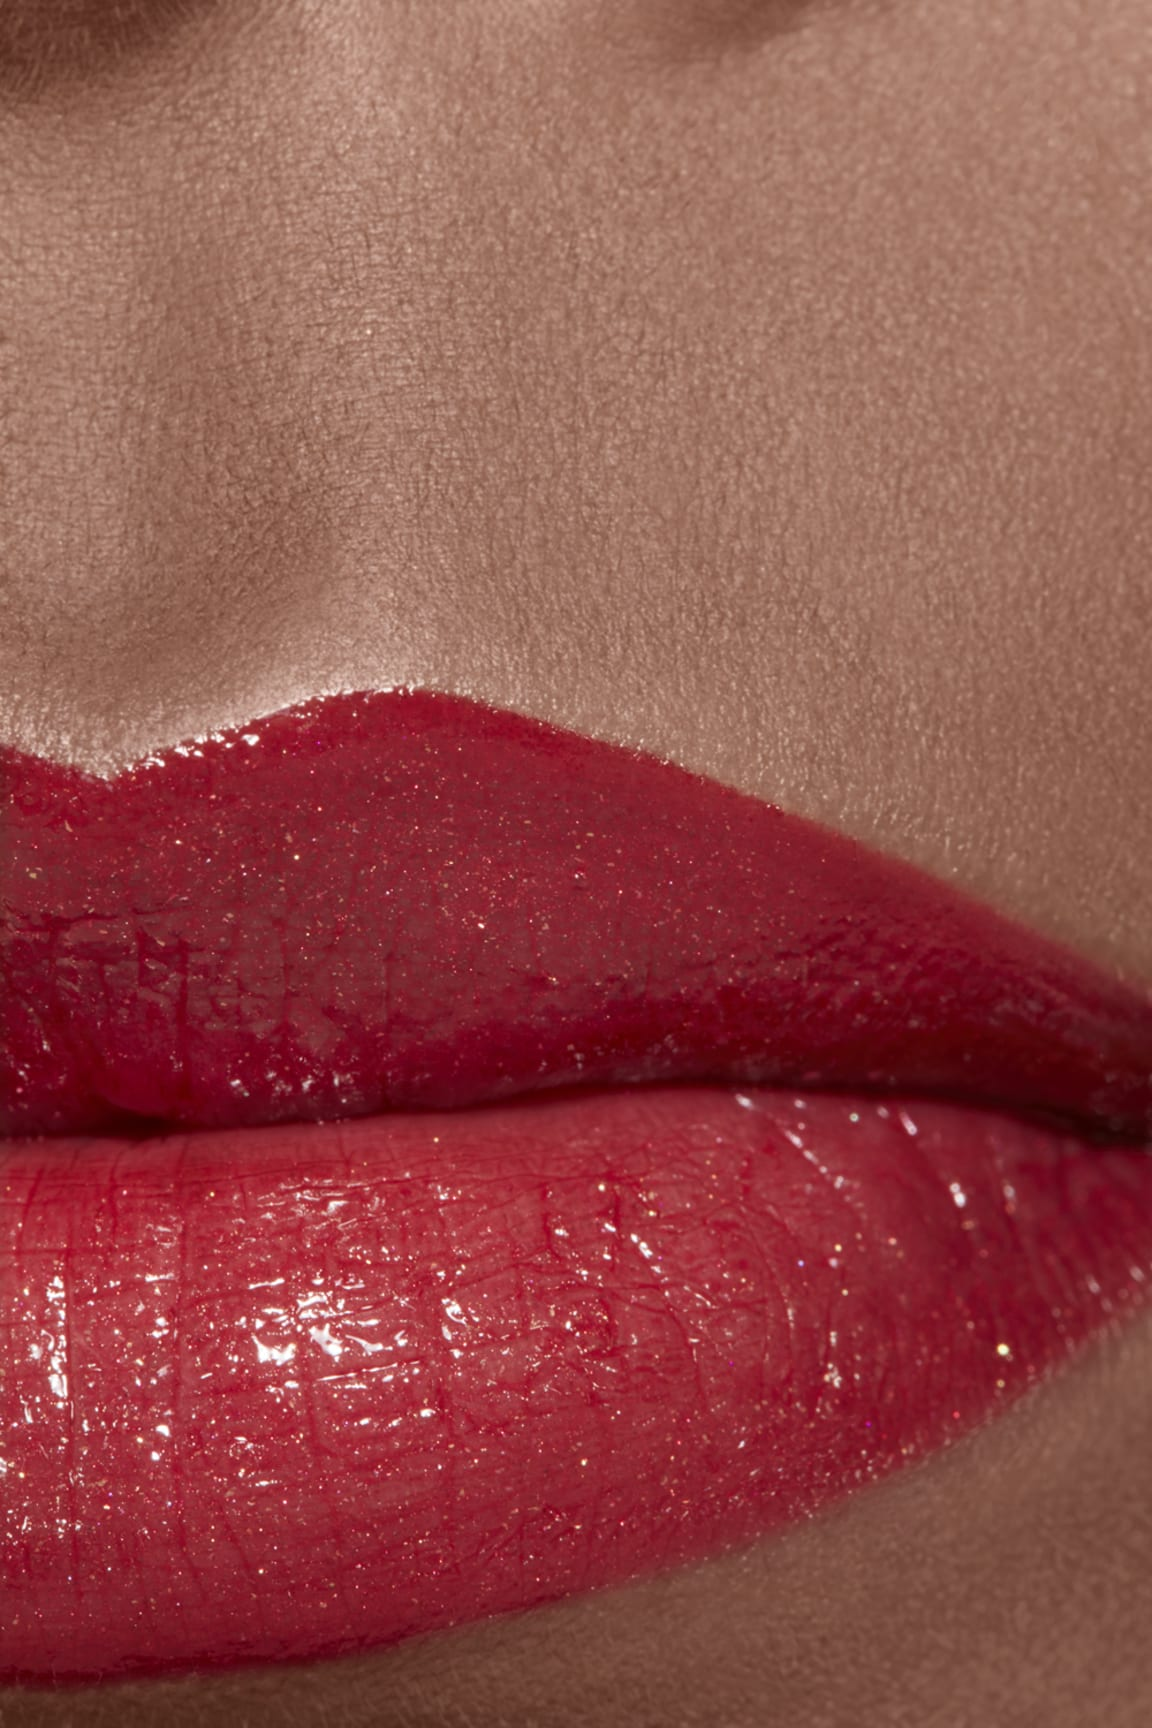 Application makeup visual 2 - ROUGE COCO FLASH 200 - LIGHT UP